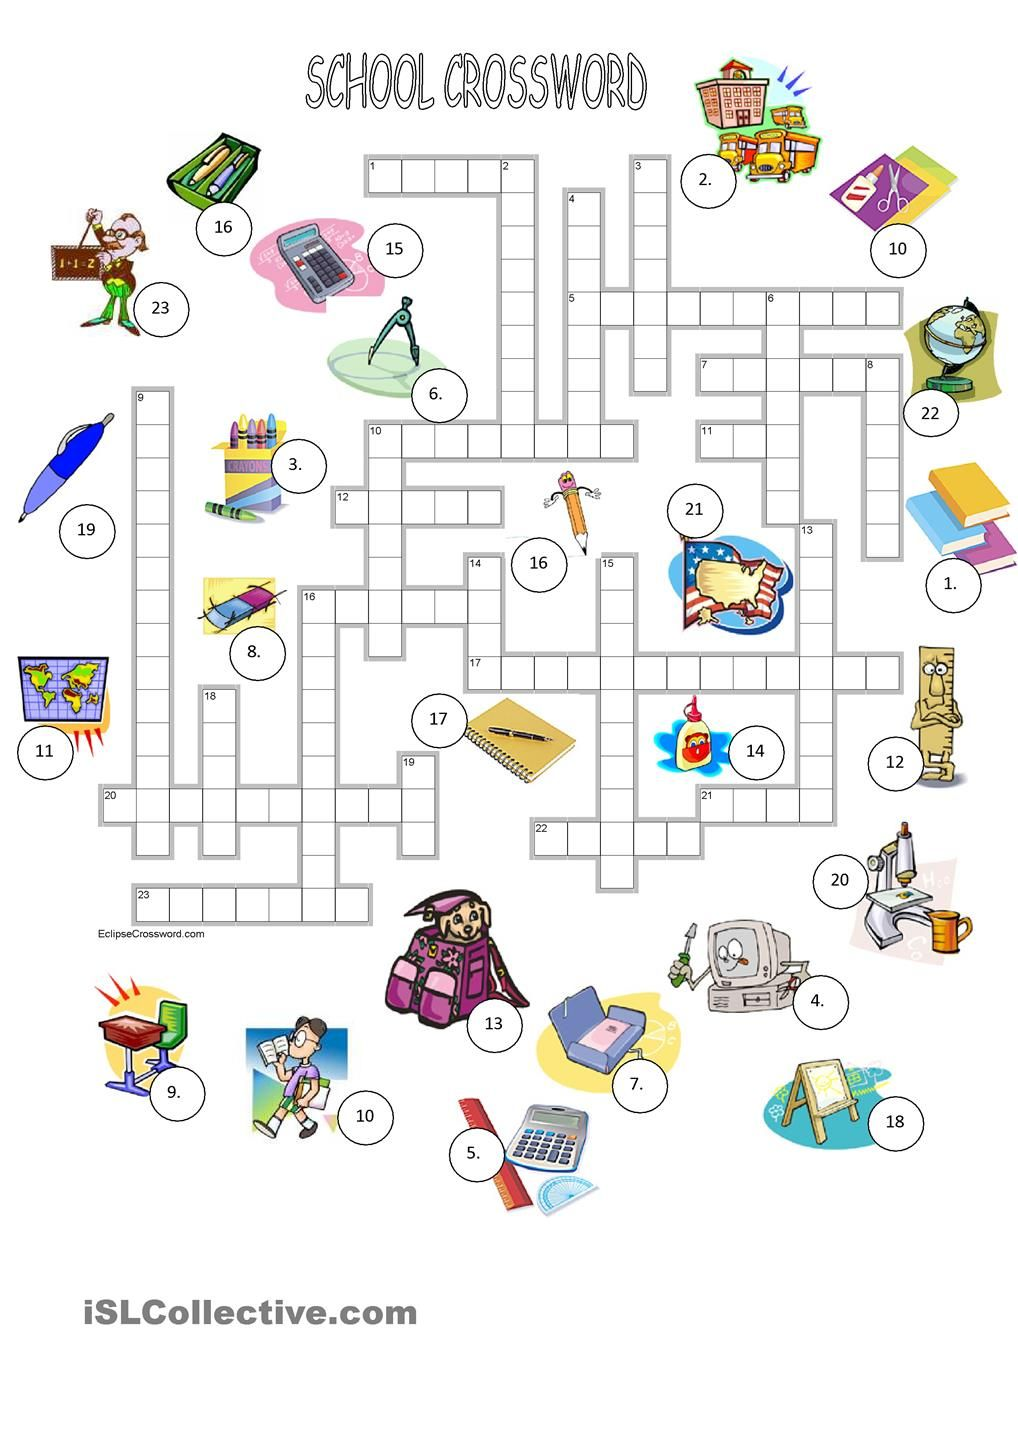 graphic relating to Back to School Crossword Puzzle Printable called College crossword + Primary Clroom English worksheets for